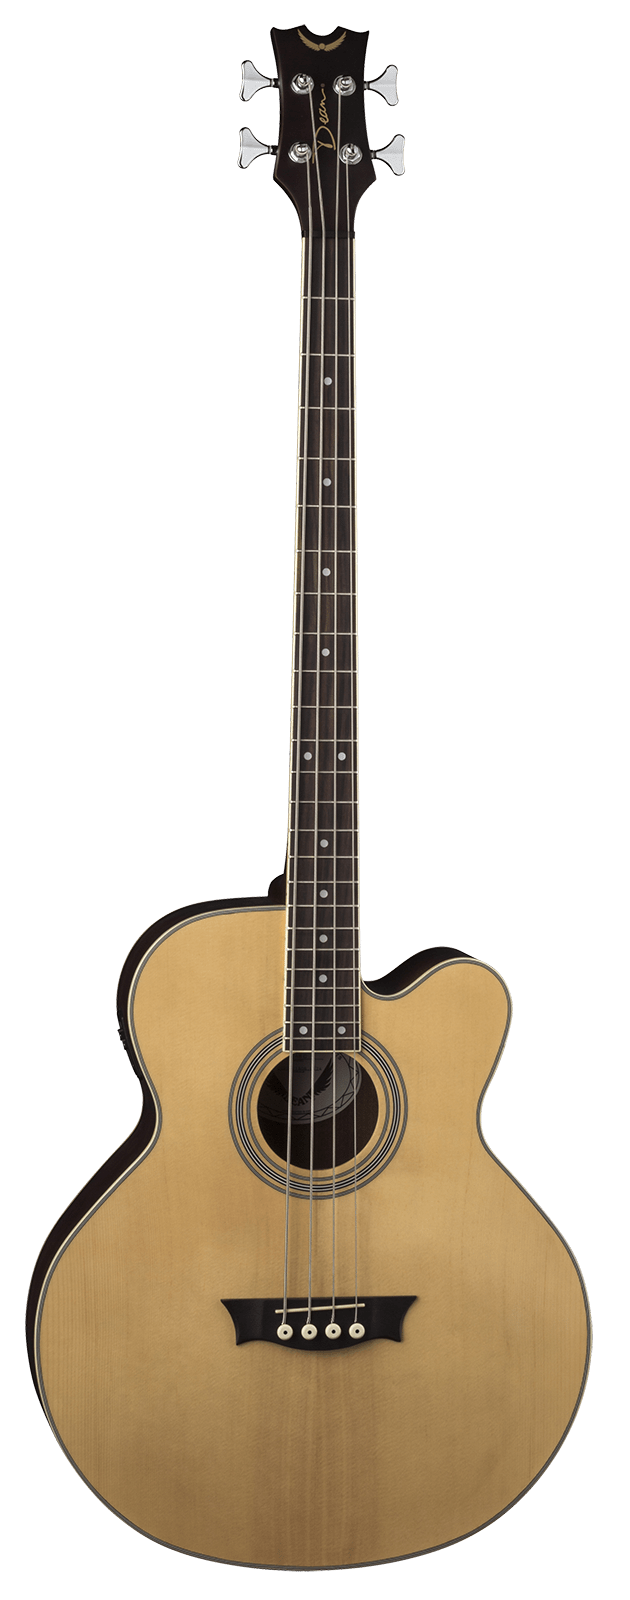 DEAN EABC ACOUSTIC-ELECTRIC BASS WITH CUTAWAY NATURAL